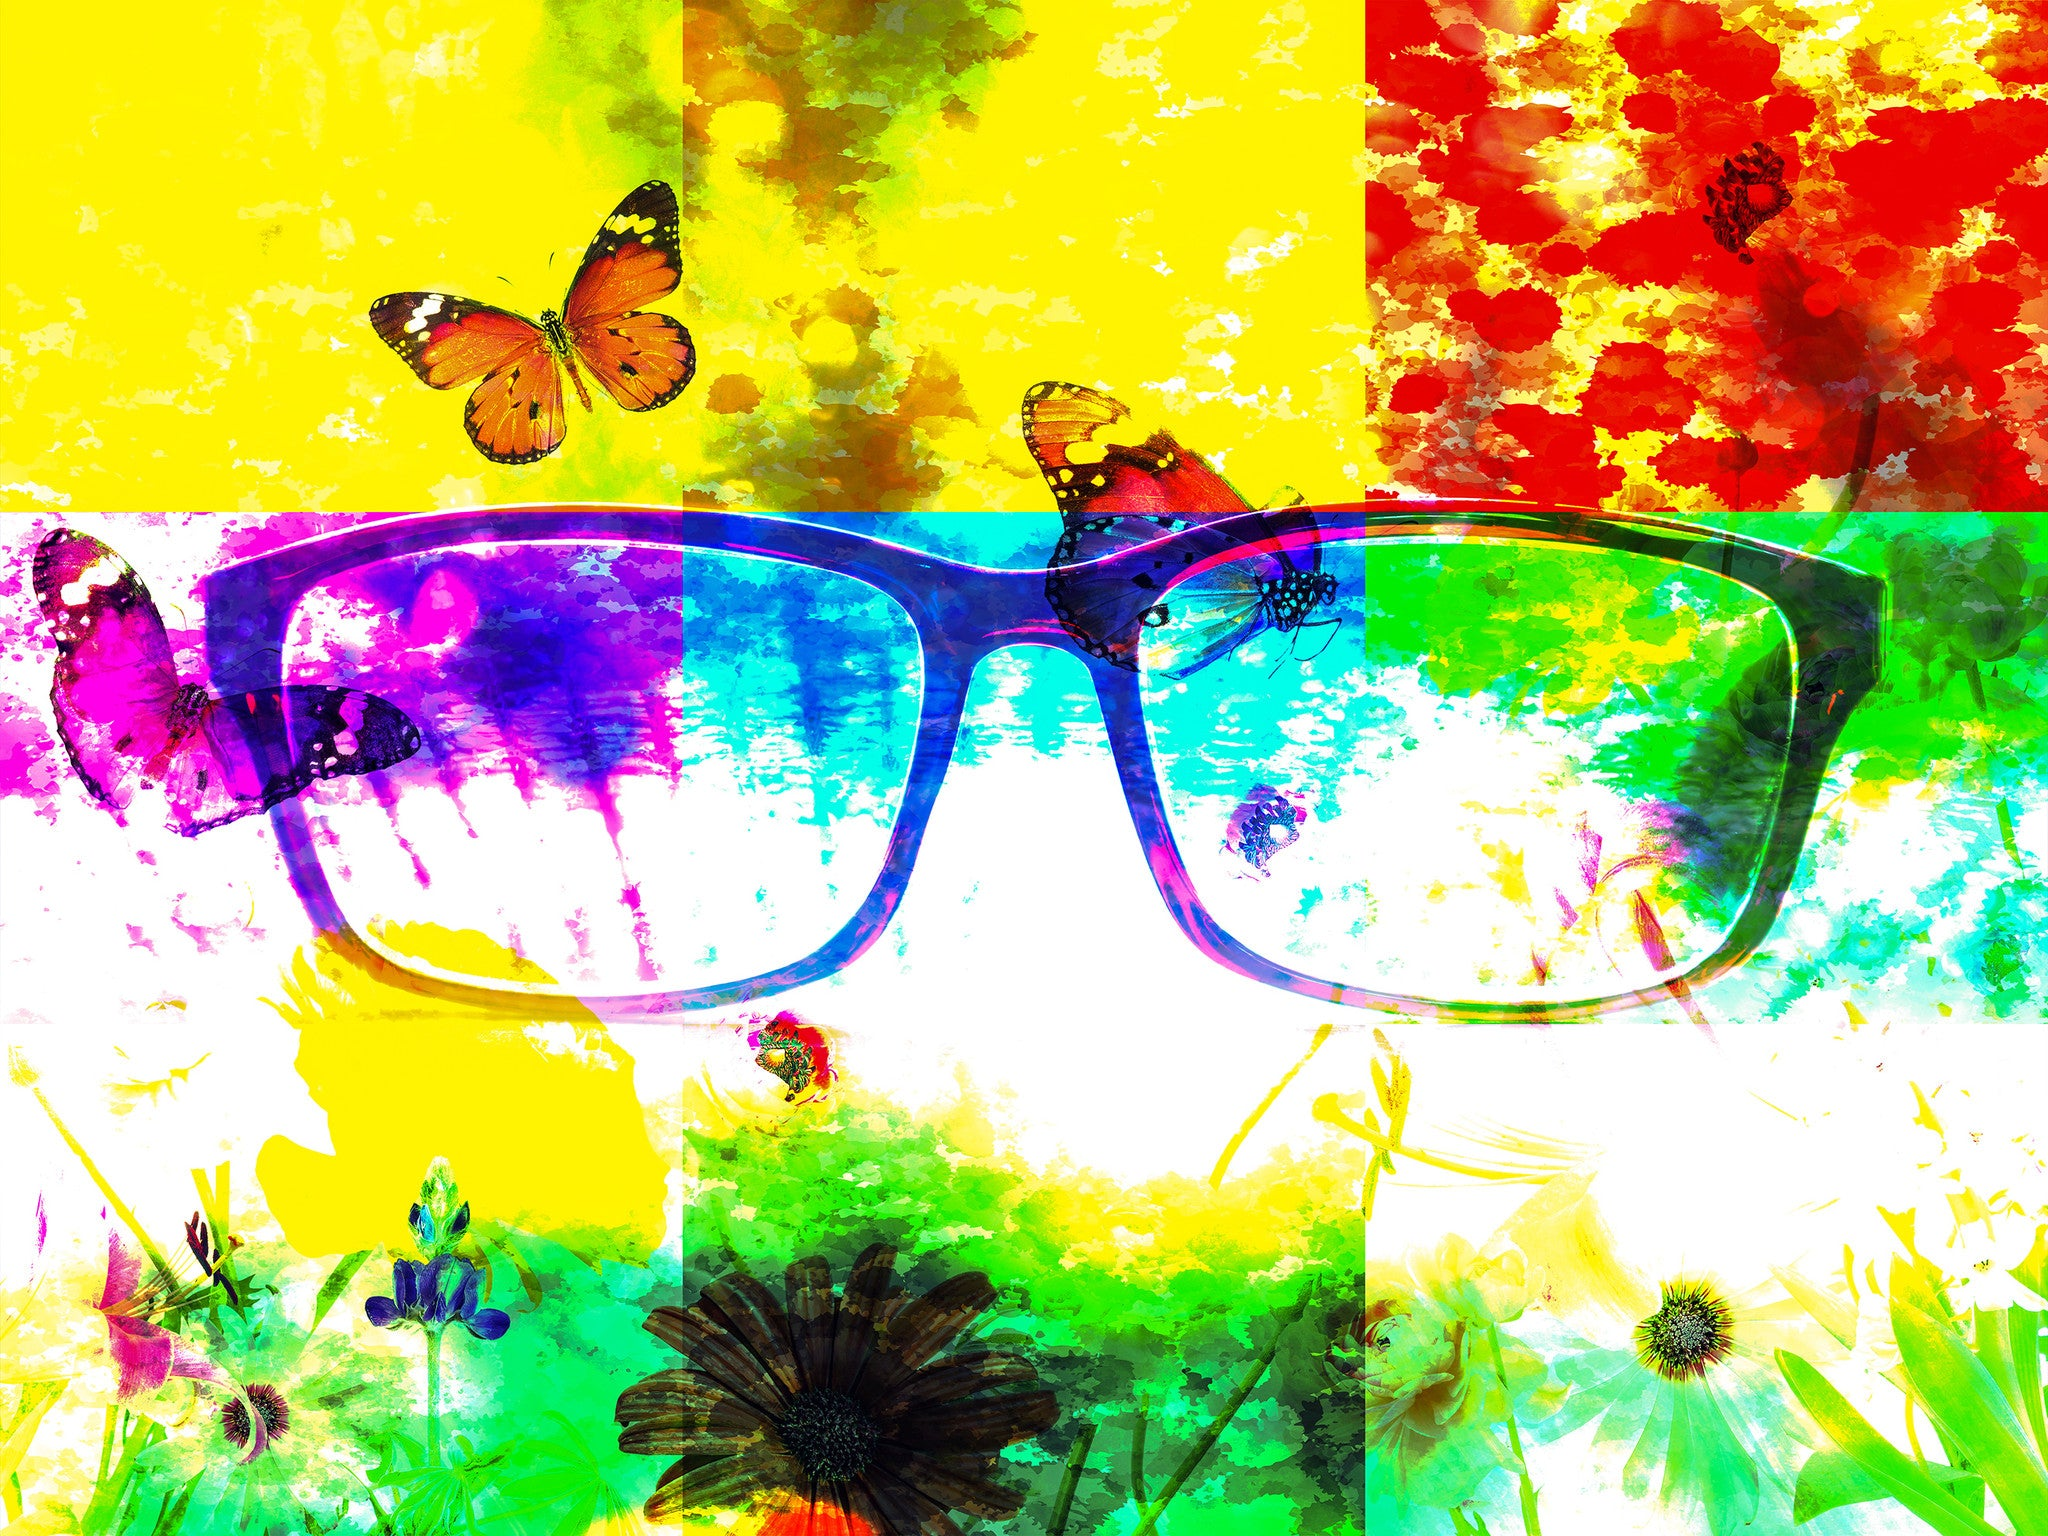 Brand-new I Love Beach With Translucent Phoropter - Artsy Office VD32